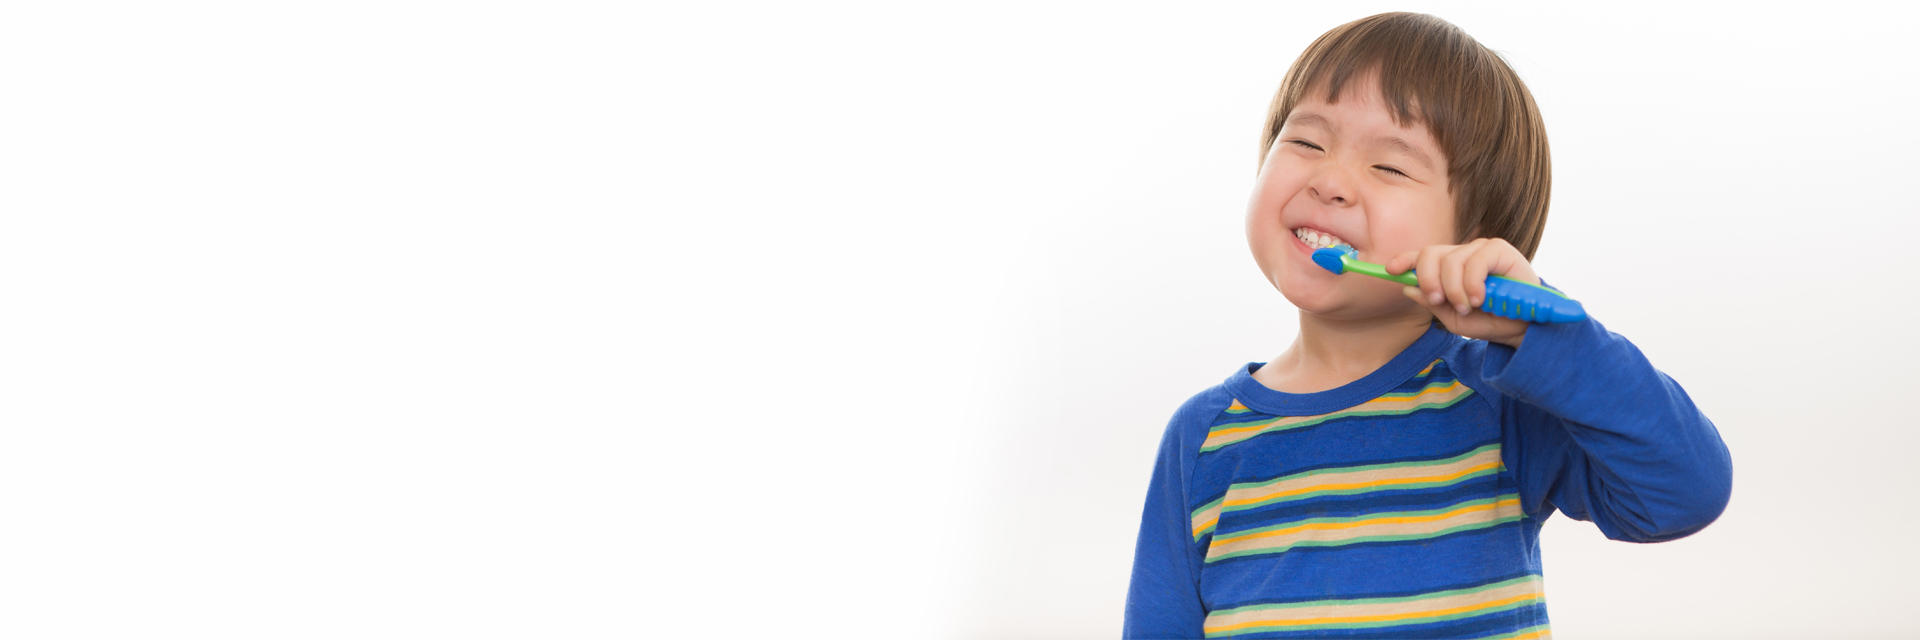 Children's Dental Center, Sioux Center, IA - As a pediatric dentistry office, we specialize in the dental treatment of infants, children, adolescents, and young adults as well as children with special health care needs.